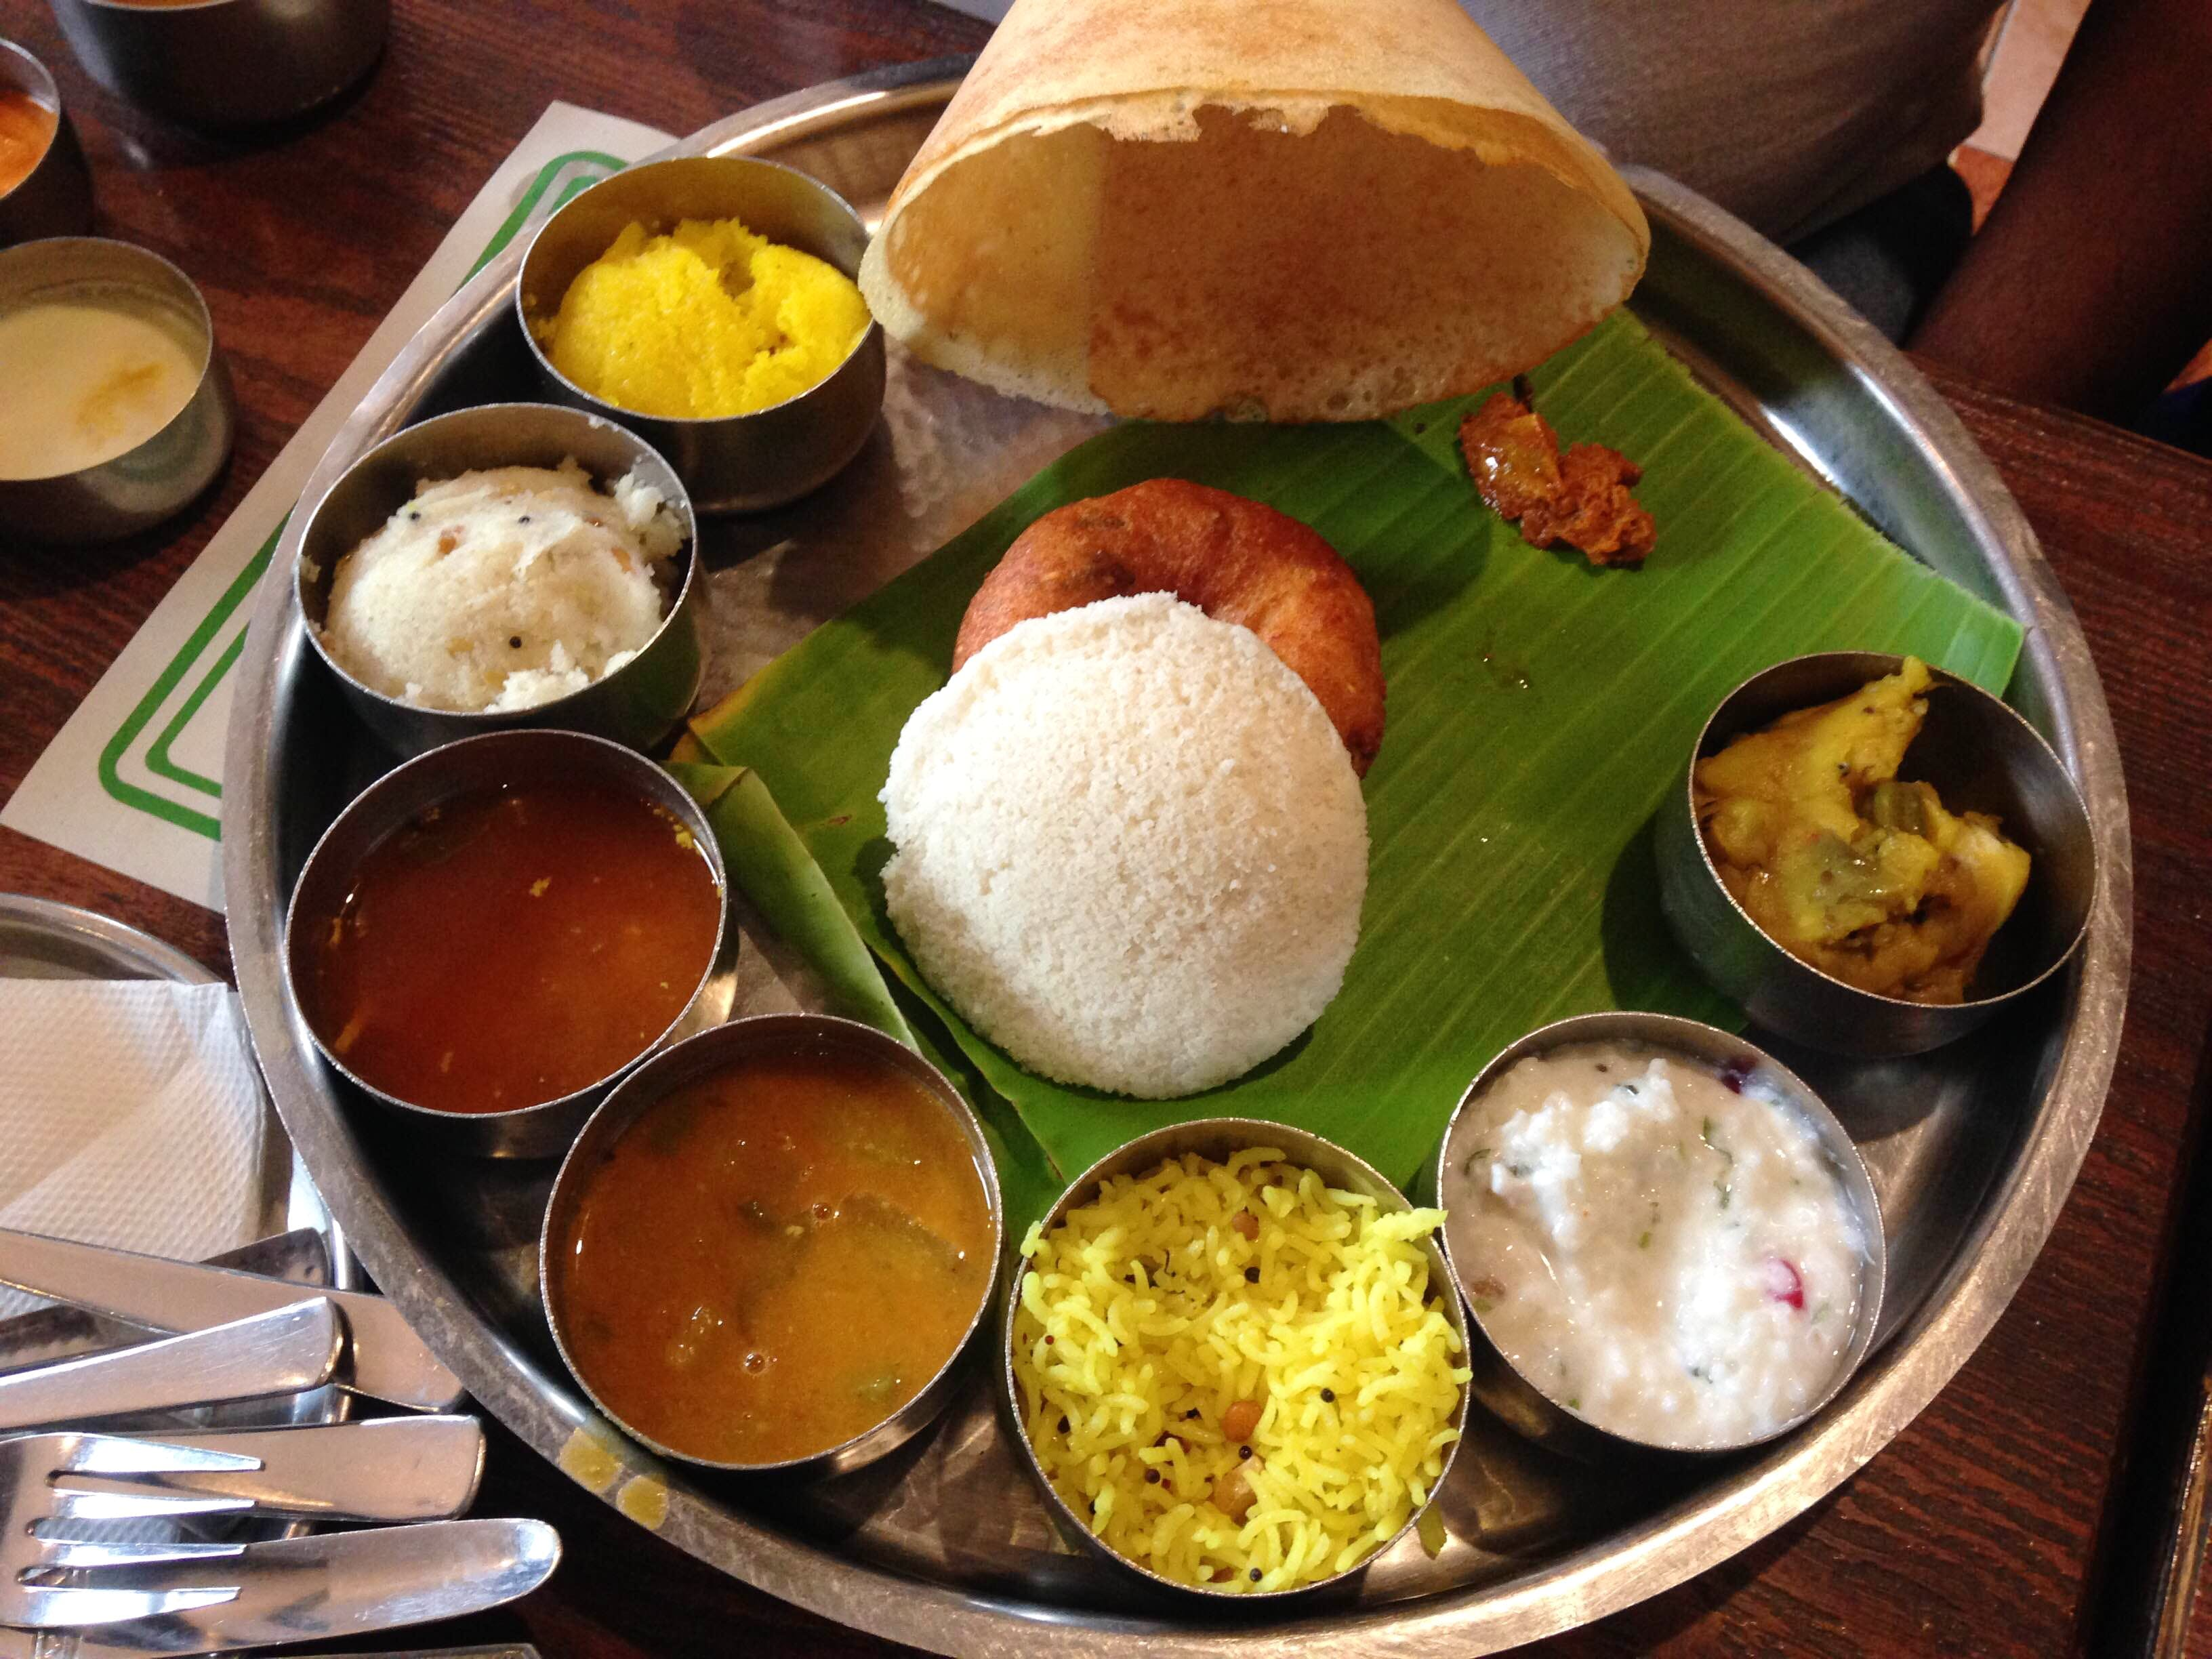 Dish,Food,Cuisine,Meal,Ingredient,Steamed rice,Produce,Indian cuisine,Comfort food,Breakfast